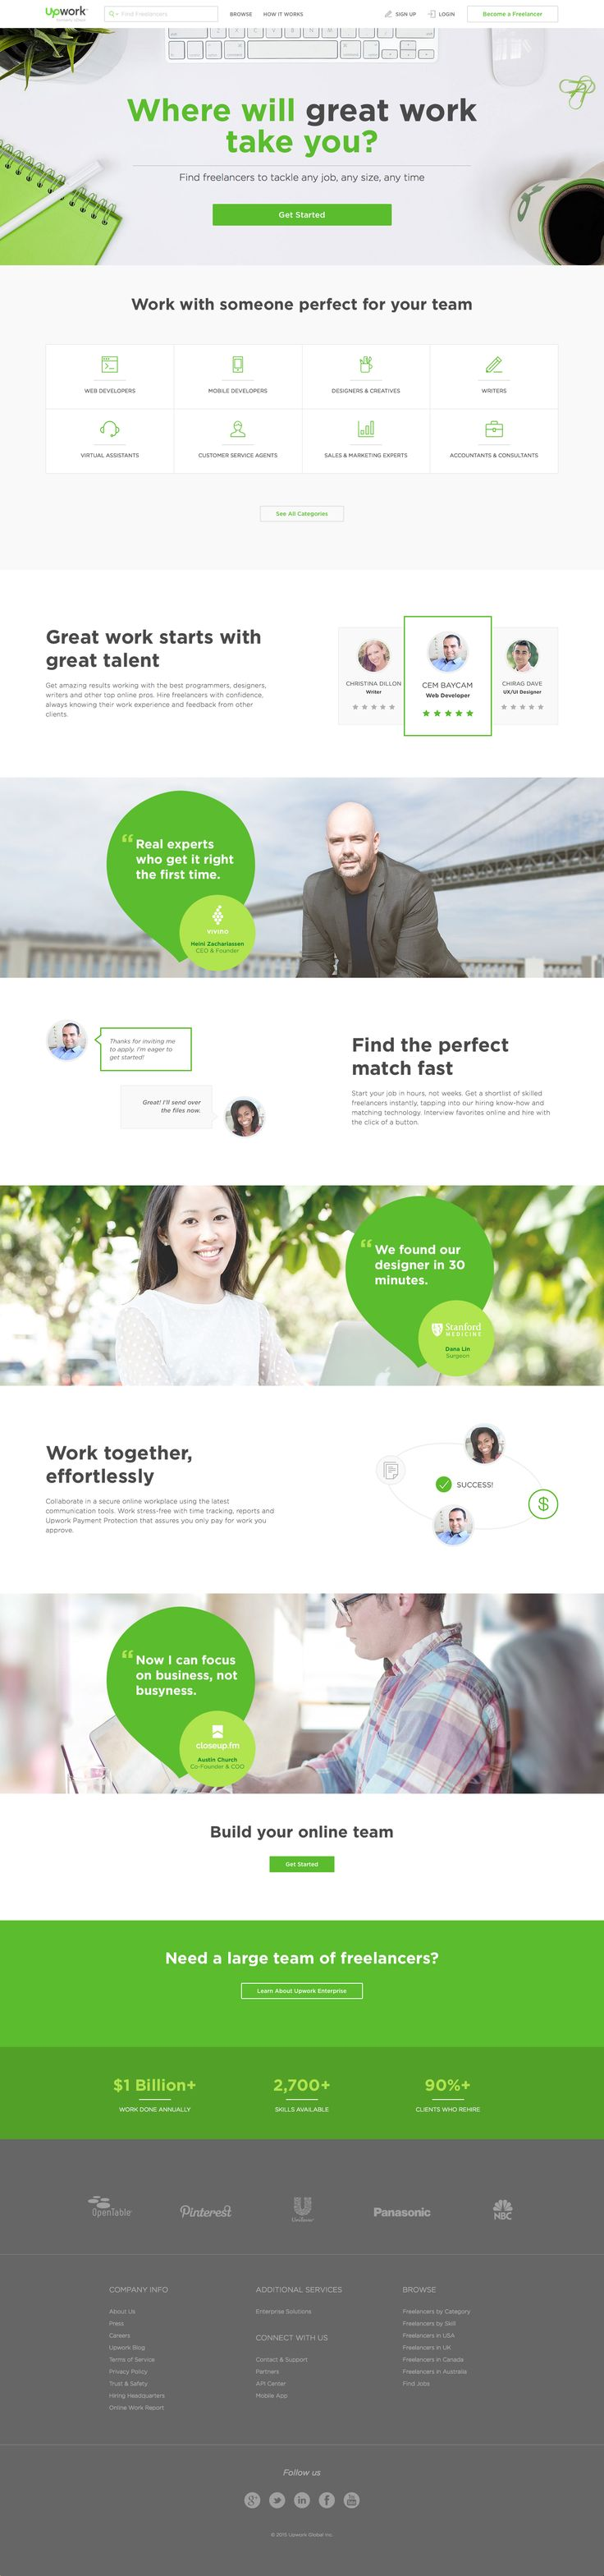 Upwork Home Page 09-25-2015